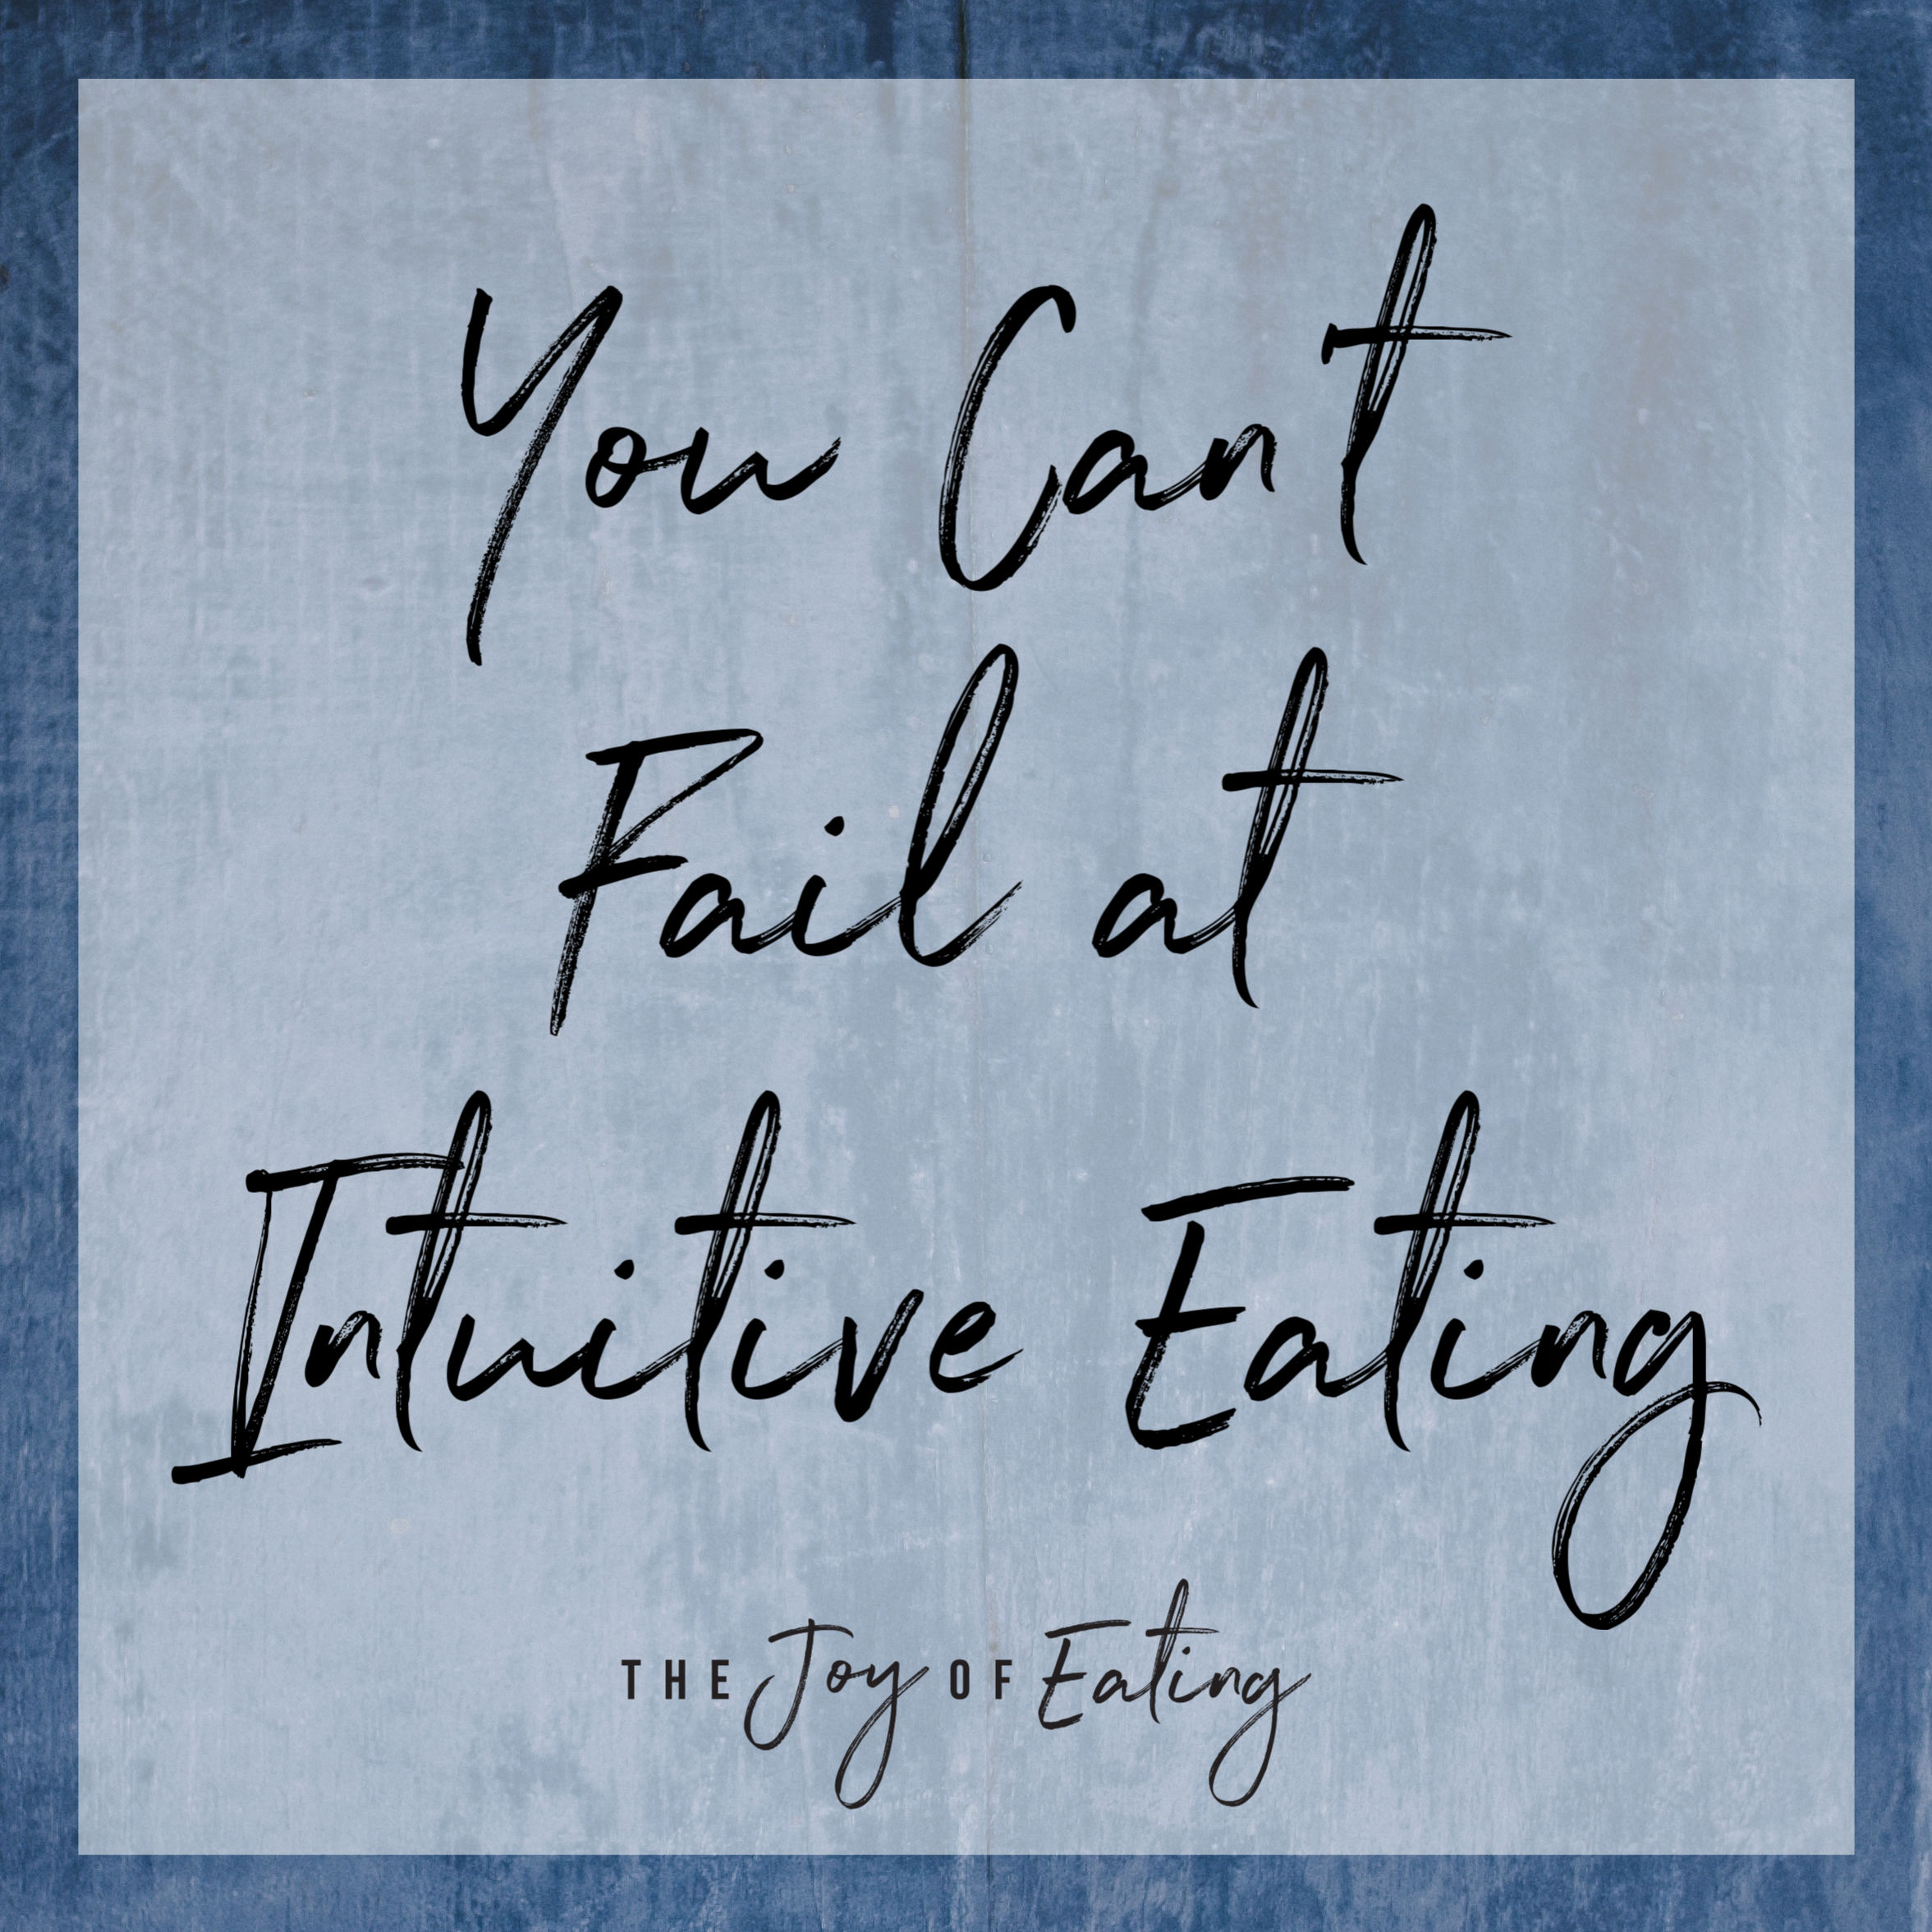 You Can't Fail at Intuitive Eating. #intuitiveeating #haes #wellness #nutrition #quote